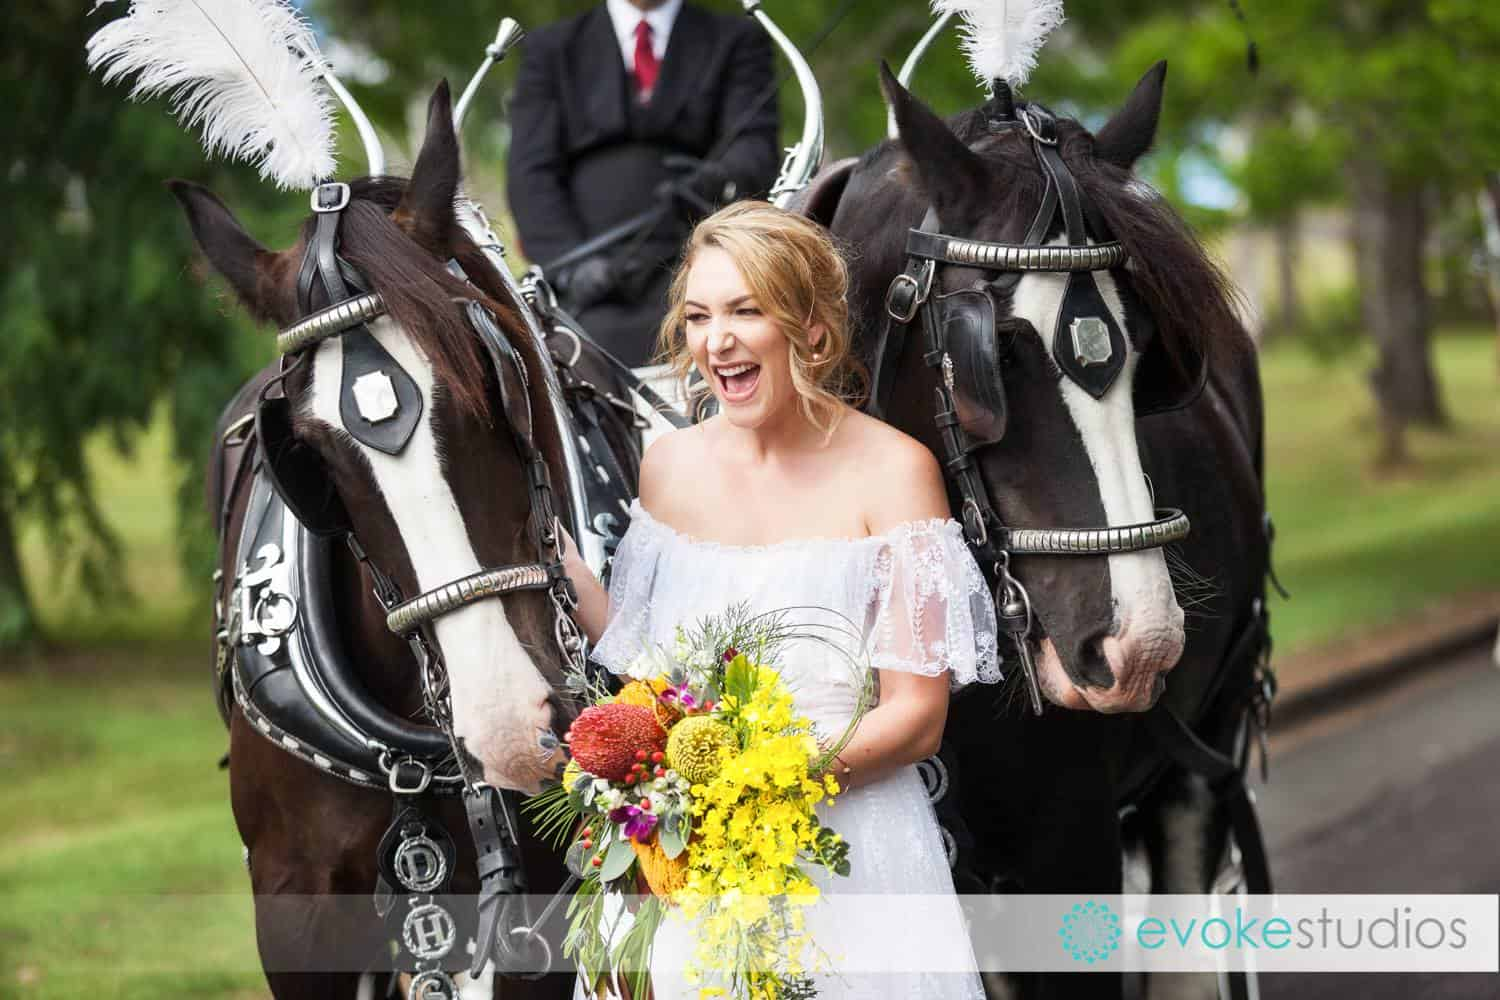 Drayhorse Shires Australia - Wedding Carriage Hire, Brisbane, Gold Coast